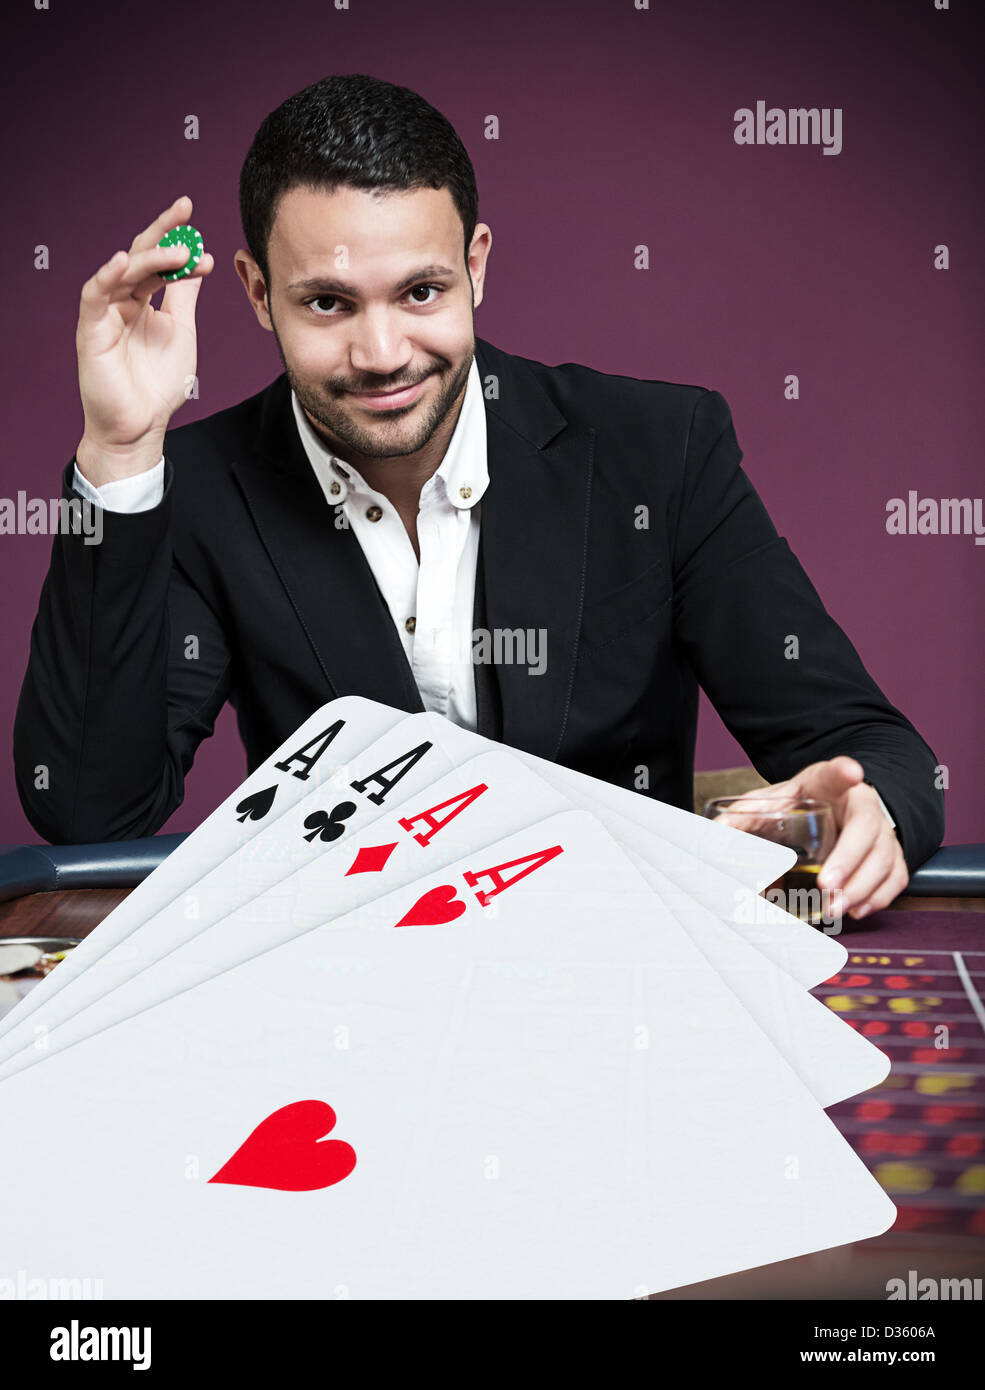 Handsome gambler betting on four aces - Stock Image